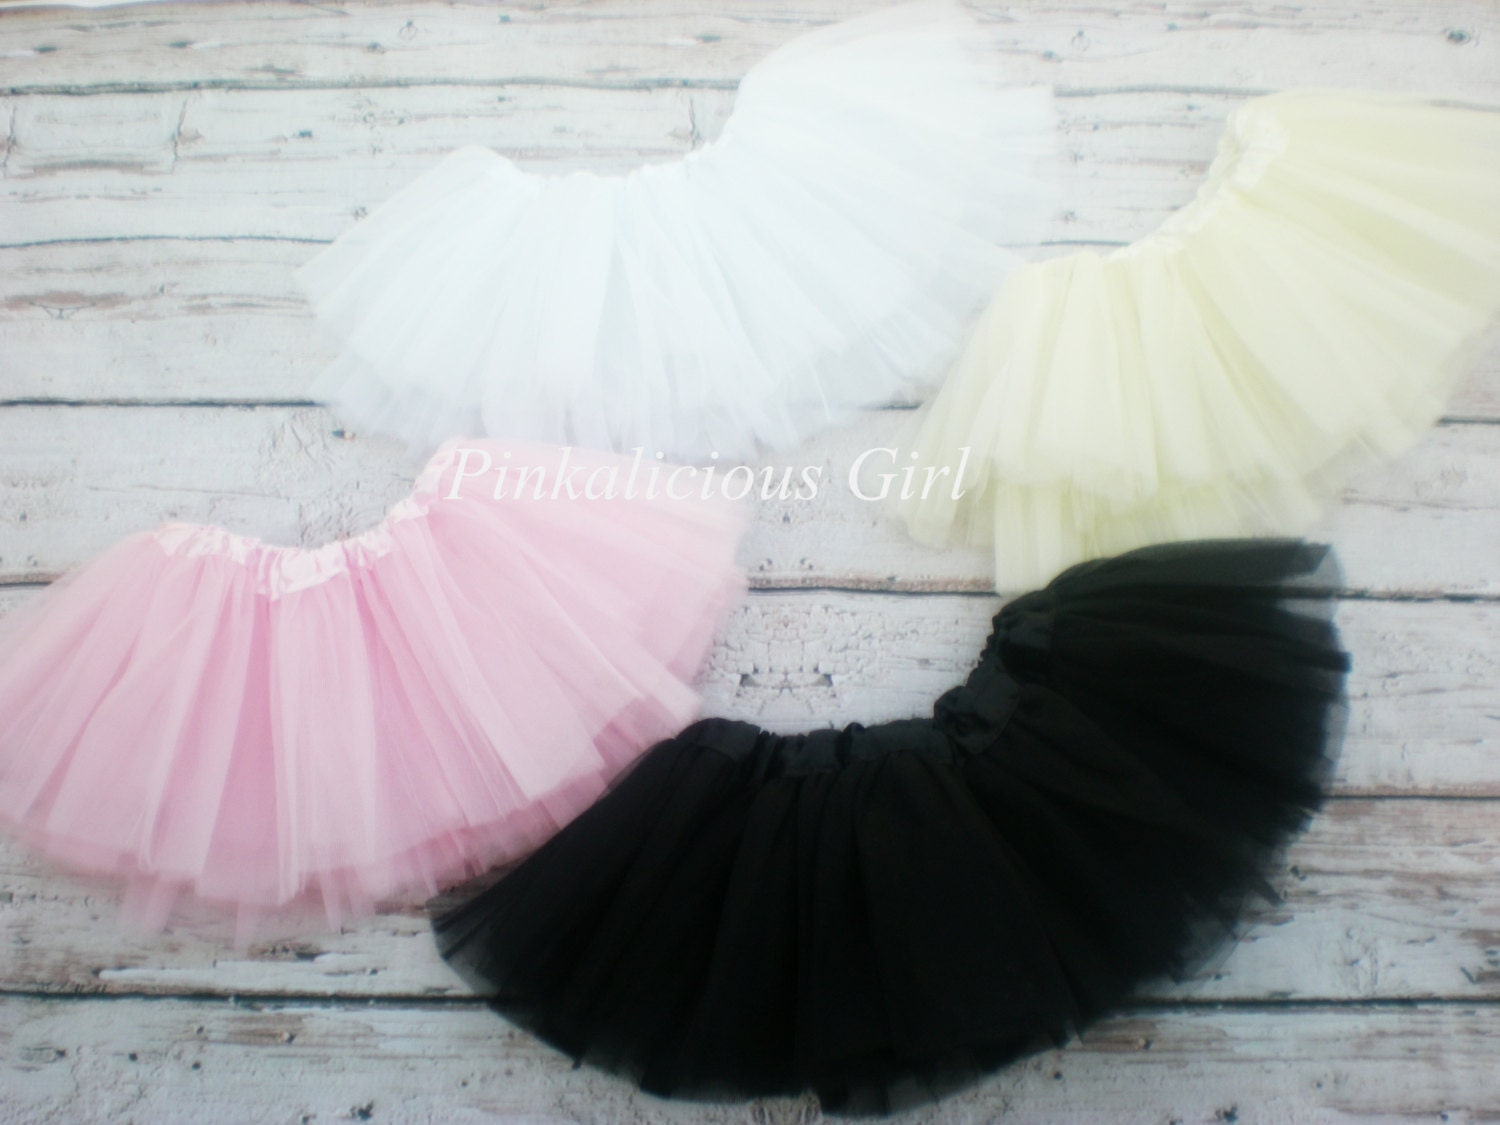 Baby, Infant, Toddler Tutus. Come Shop our wide variety of Newborn Little Girl Tutus. We are sure you will love all our handmade Tulle tutu creations that are Soft and stretchy for your princess.